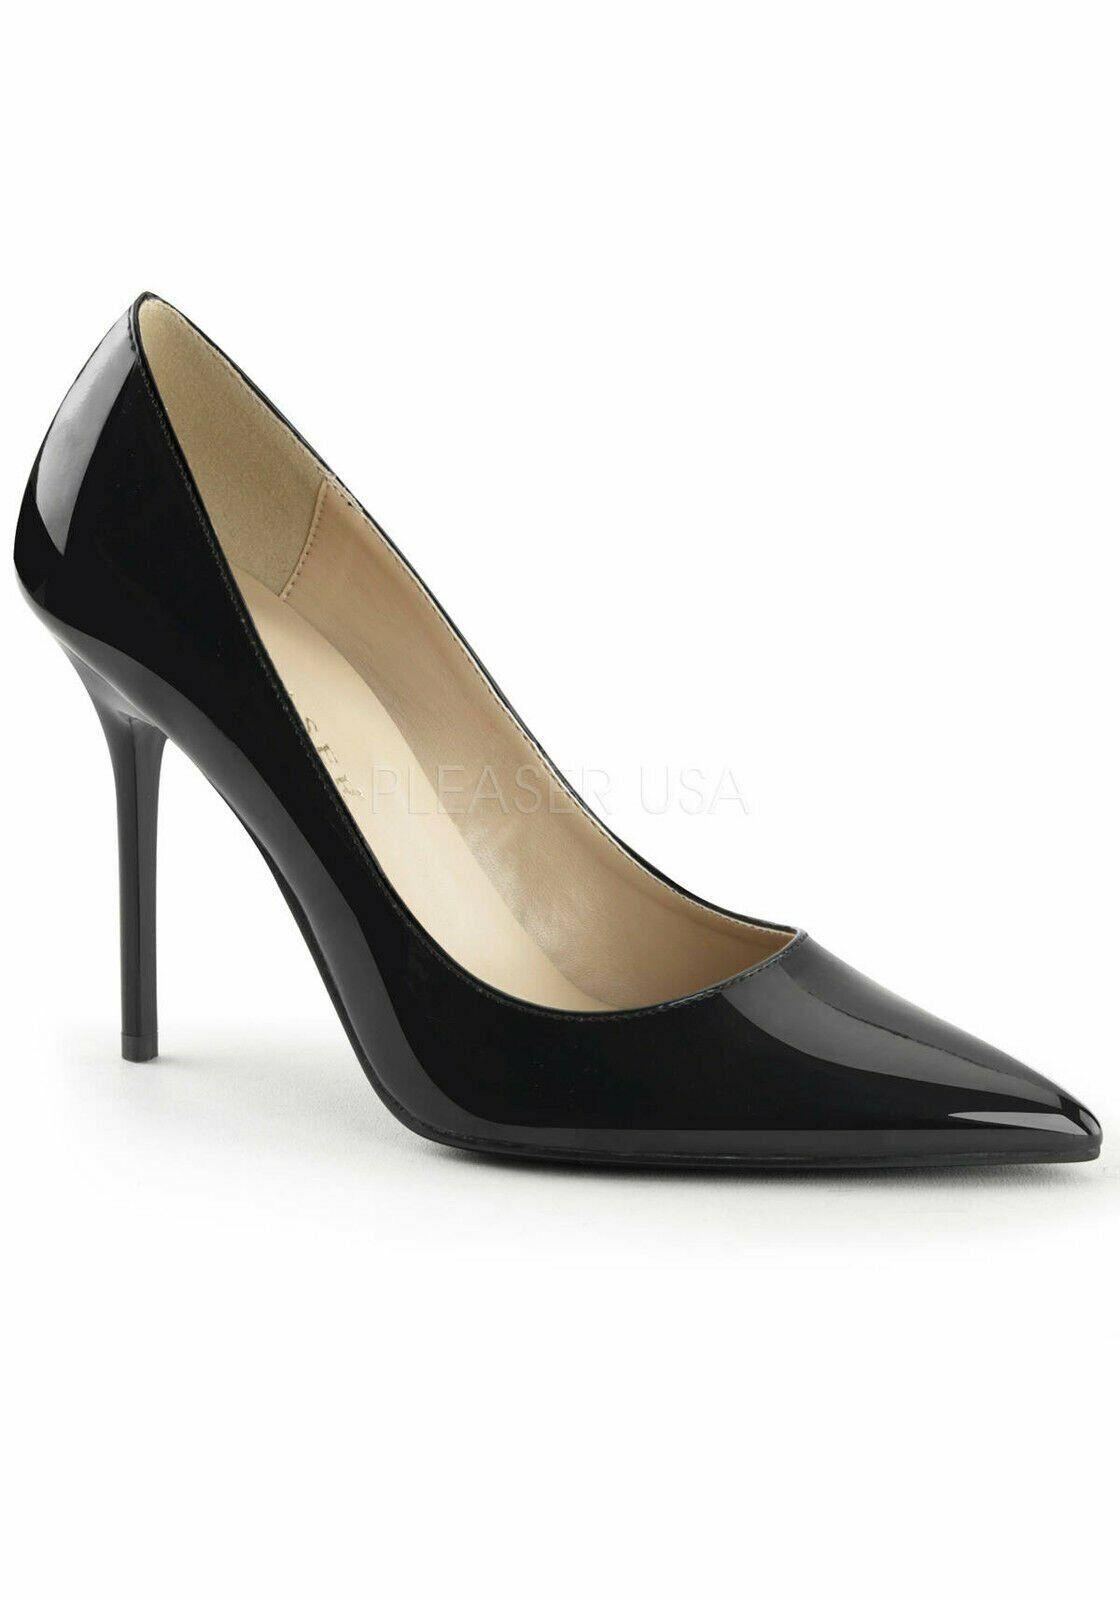 Pleaser CLASSIQUE-20 4 Inch Pointed-Toe Pump